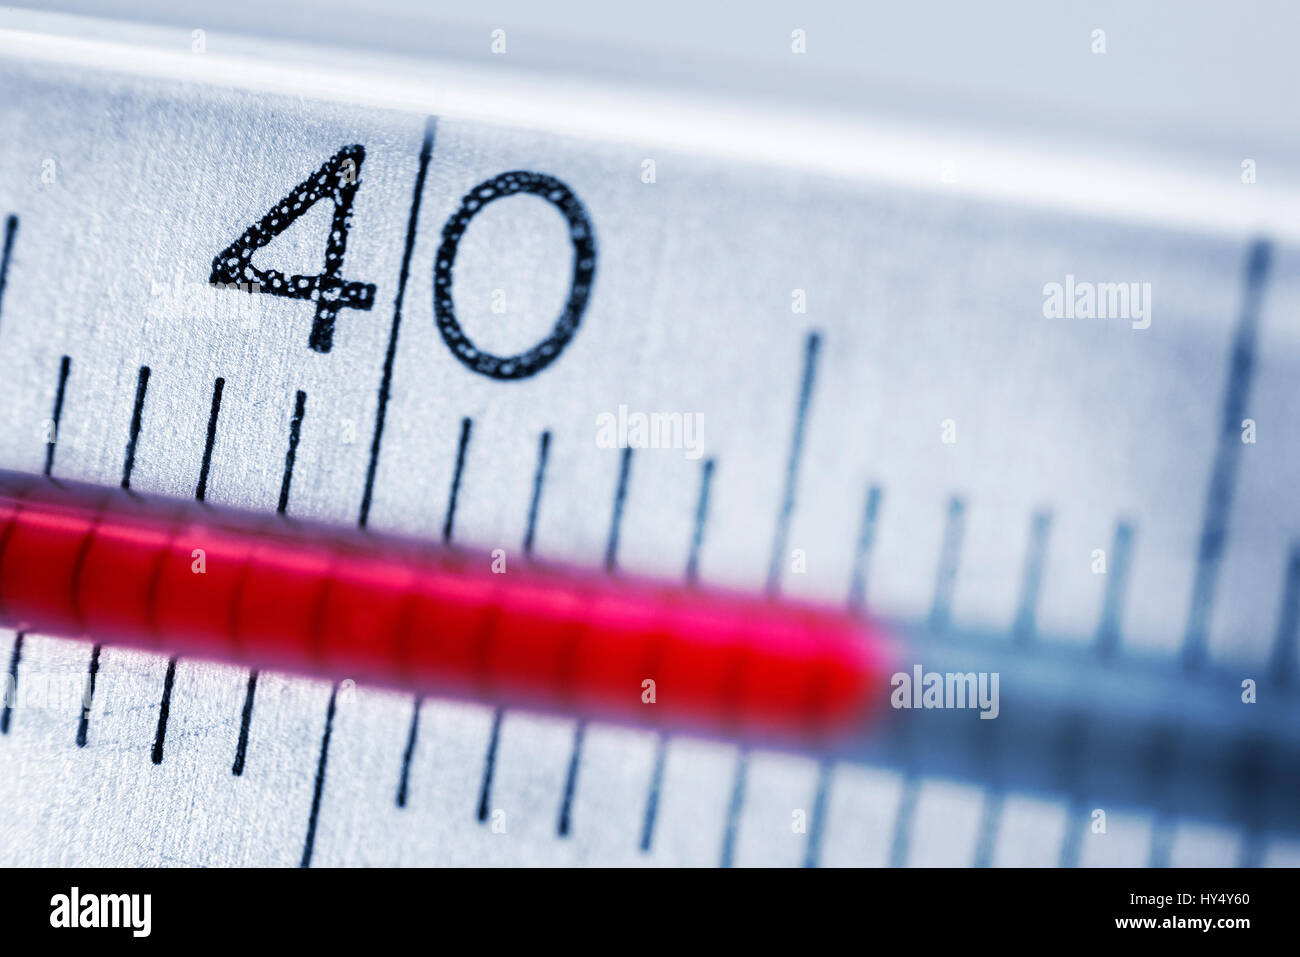 Clinical thermometer at more than 40 degrees, fever, Fieberthermometer bei ueber 40 Grad, Fieber Stock Photo